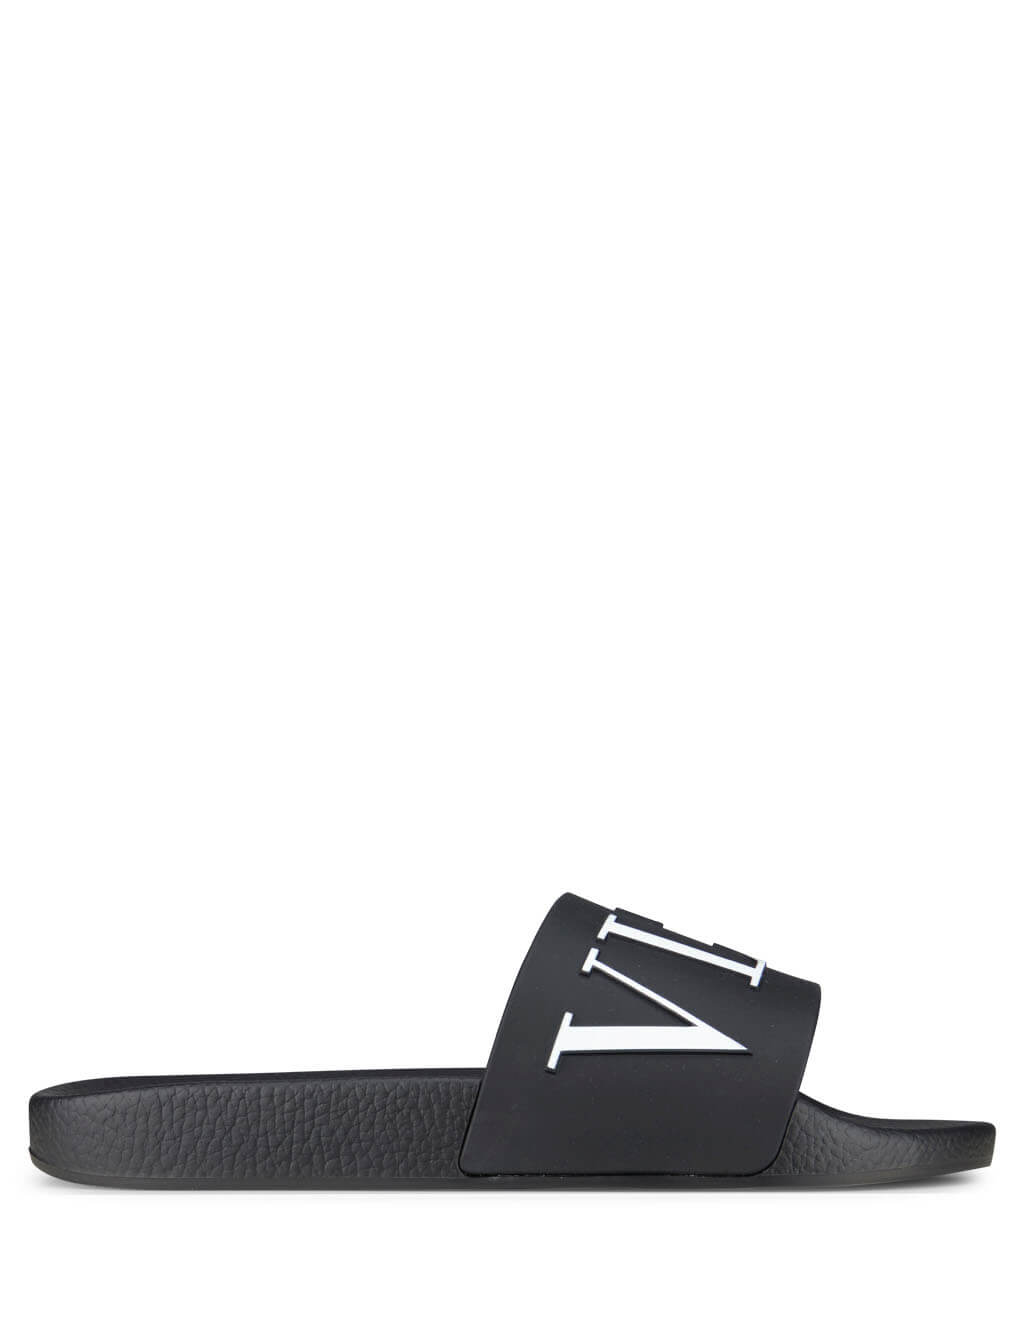 Valentino Men's Giulio Fashion Black/White VLTN Sliders QY2S087SYE0NI